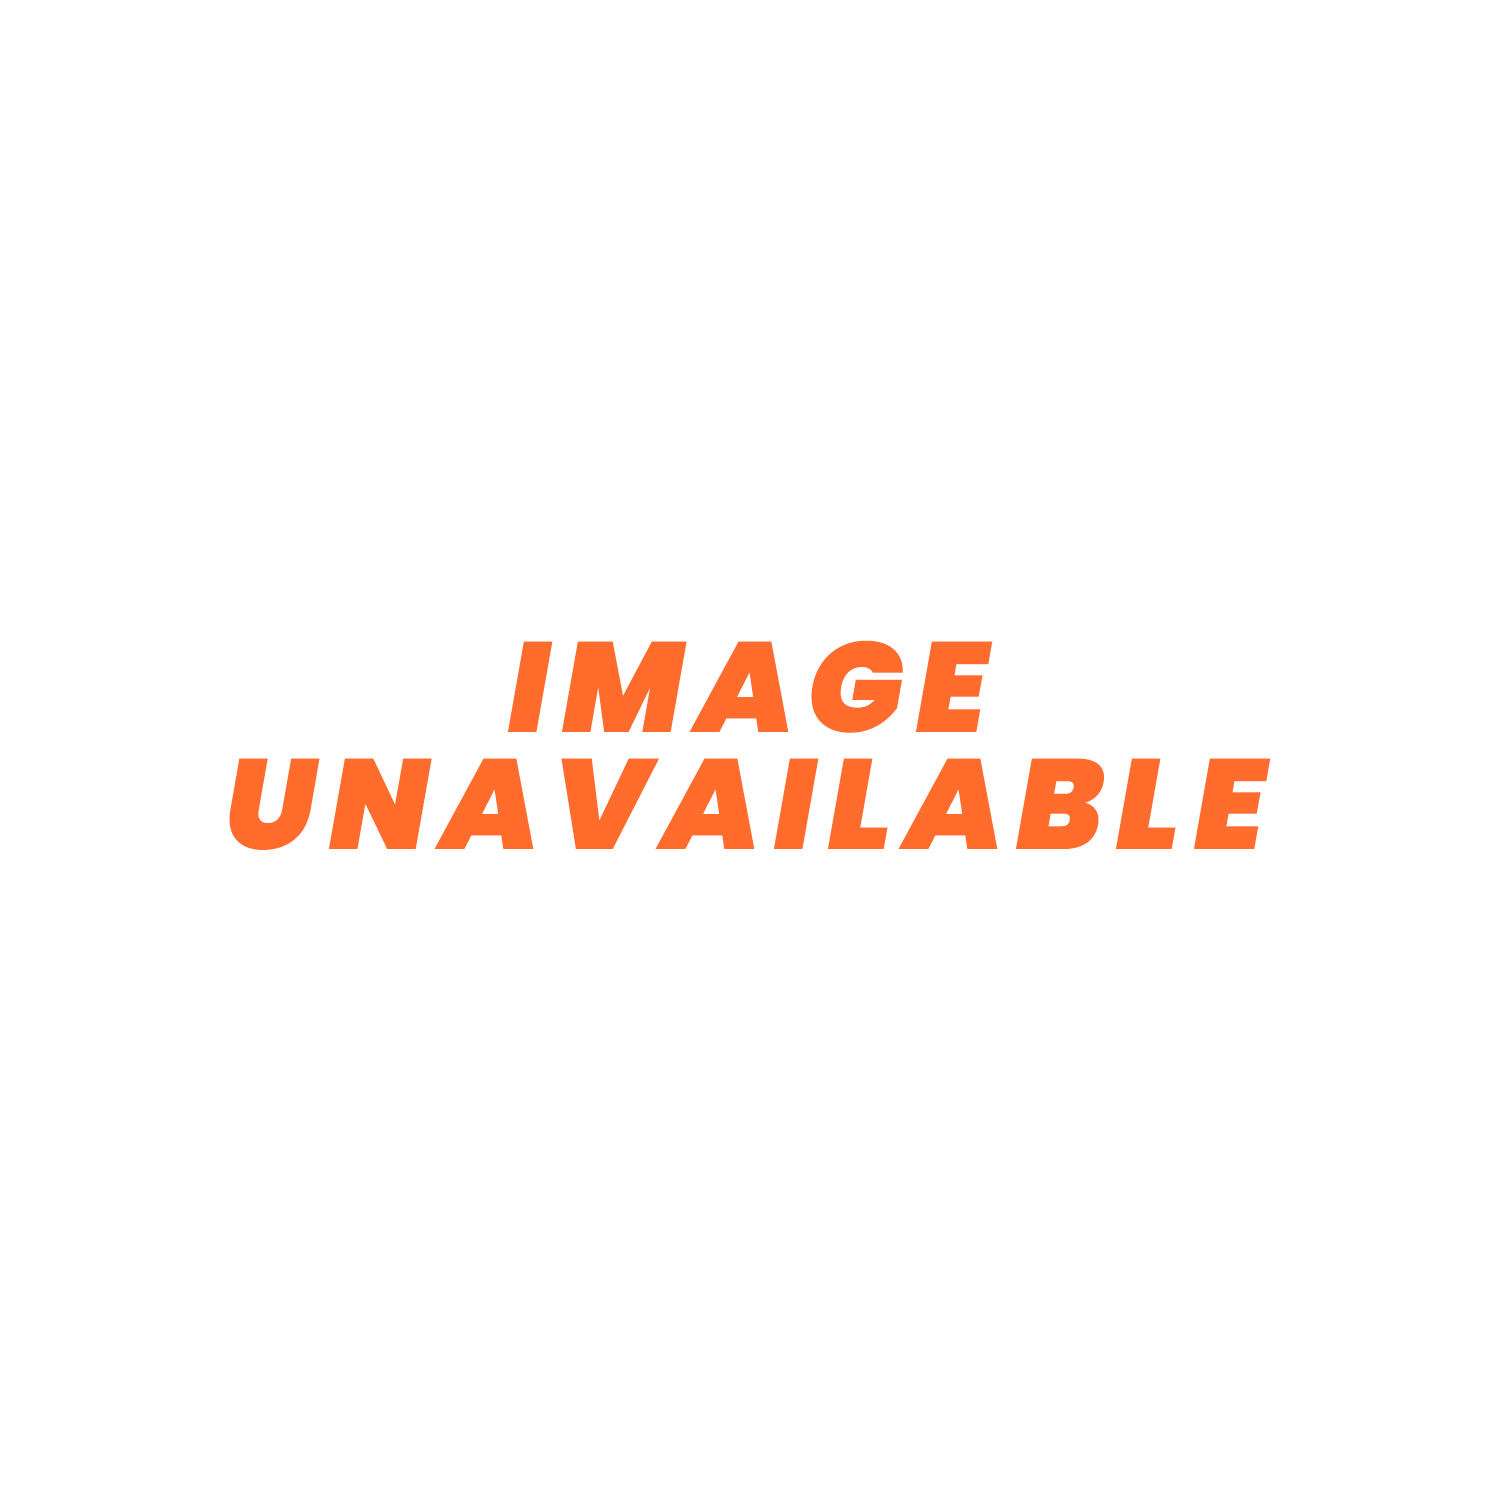 EWP130 Alloy Water Pump & Digital Controller 12v kit